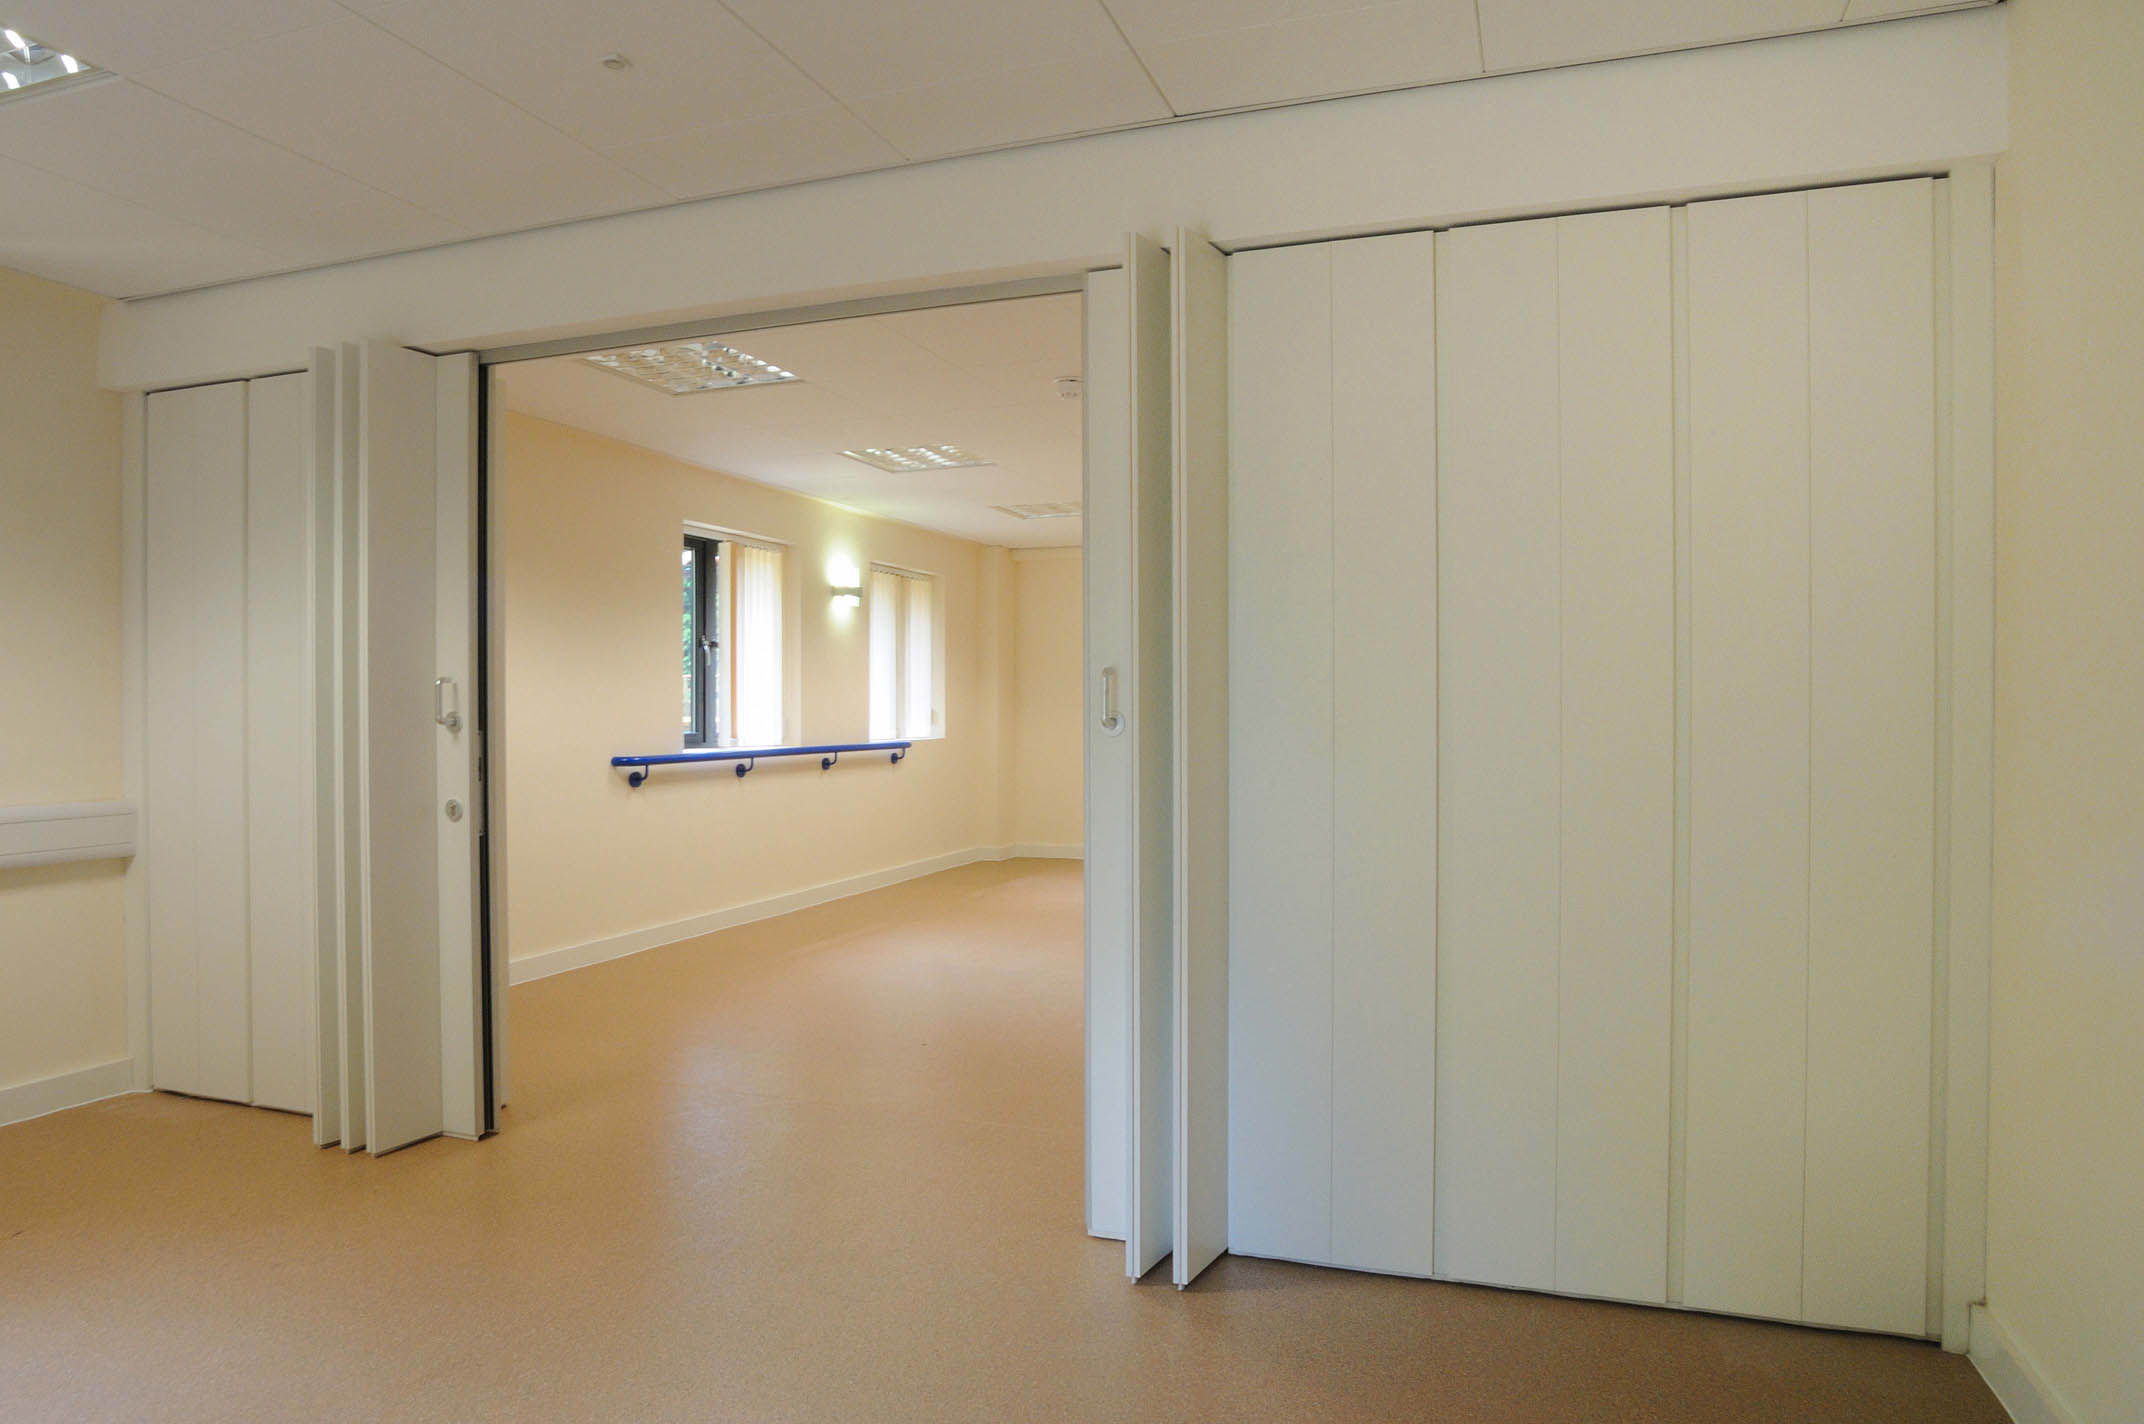 Le Meilleur Becker Sliding Partitions Ltd Ce Mois Ci